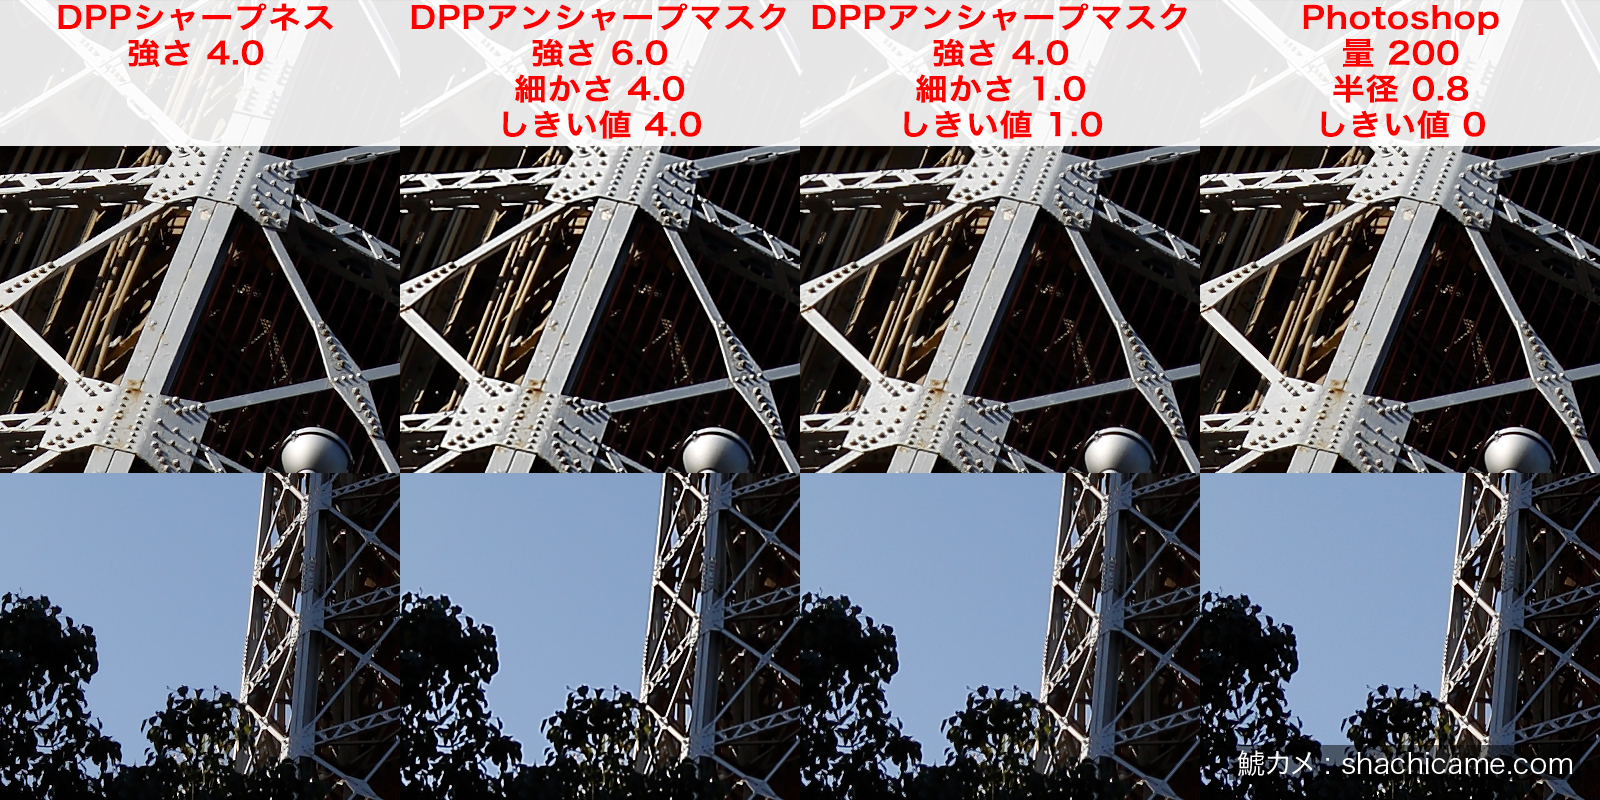 DPP(Digital Photo Professional)Photoshop シャープネス 比較